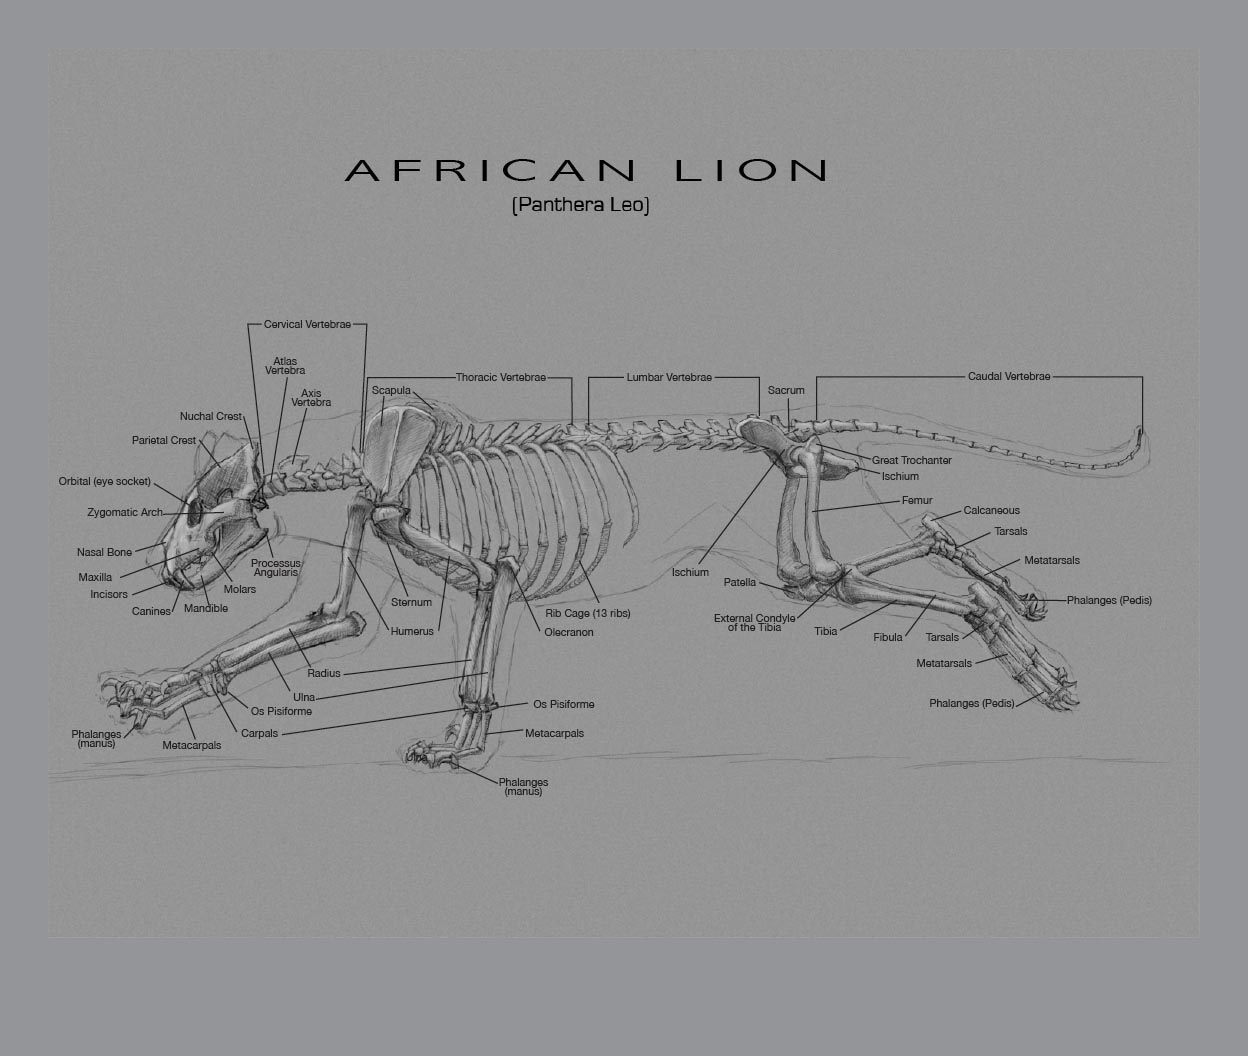 AfricanLion_Bones_JKT lion skull diagram